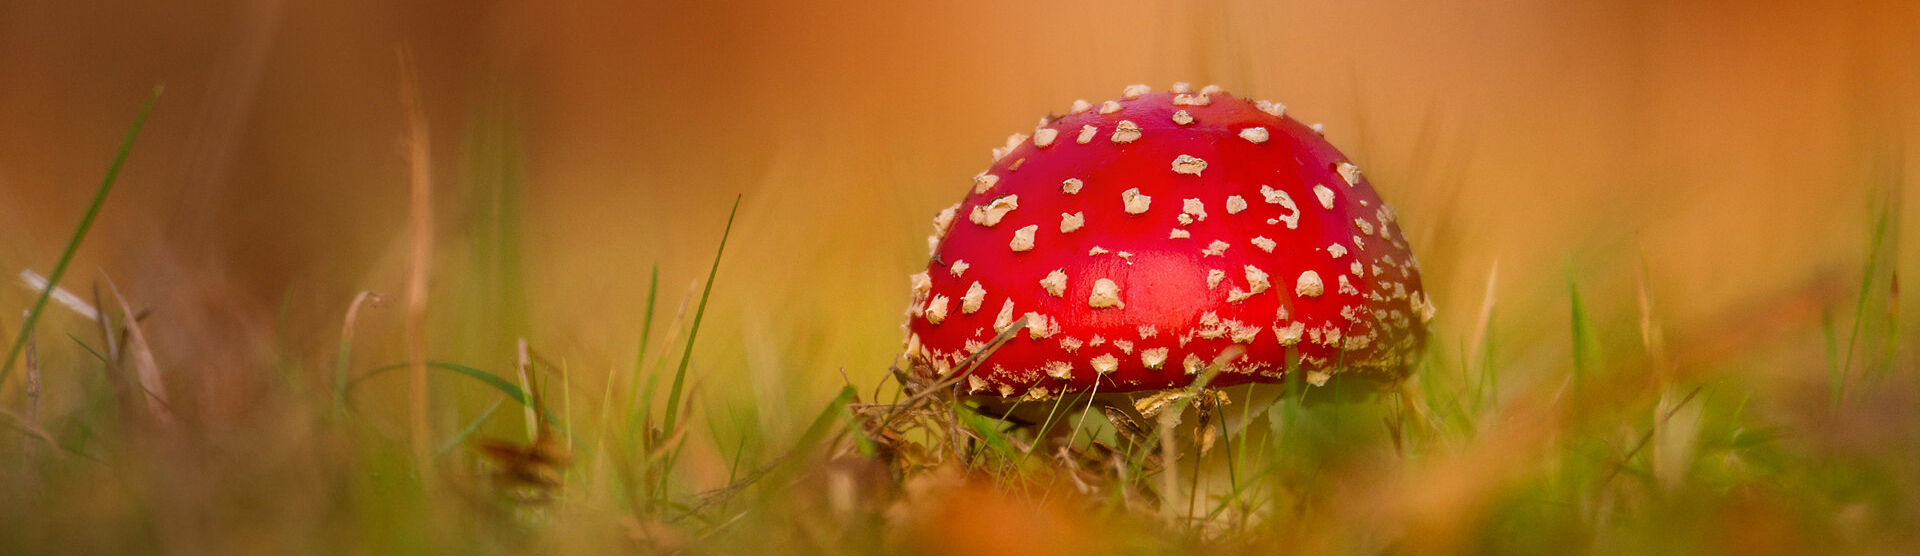 UK Fungus Day at Queenswood